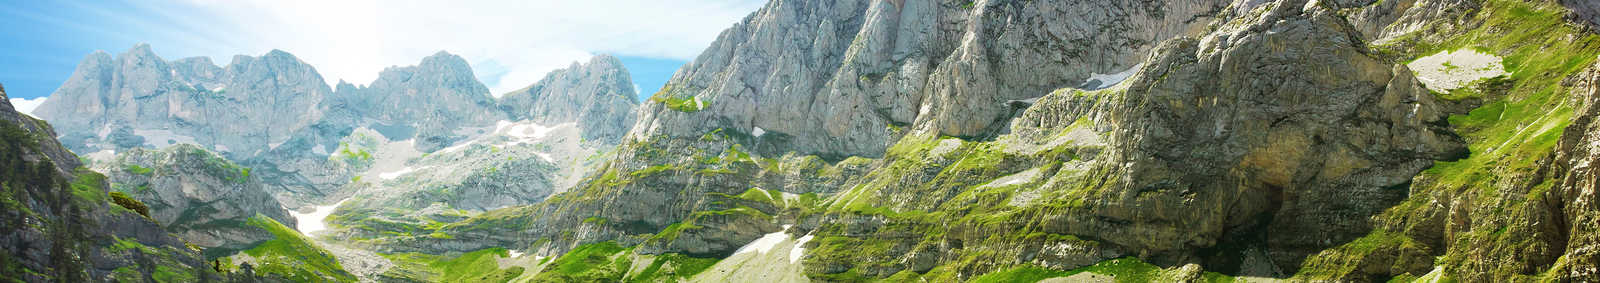 Stunning rugged scenery in the Albanian Alps